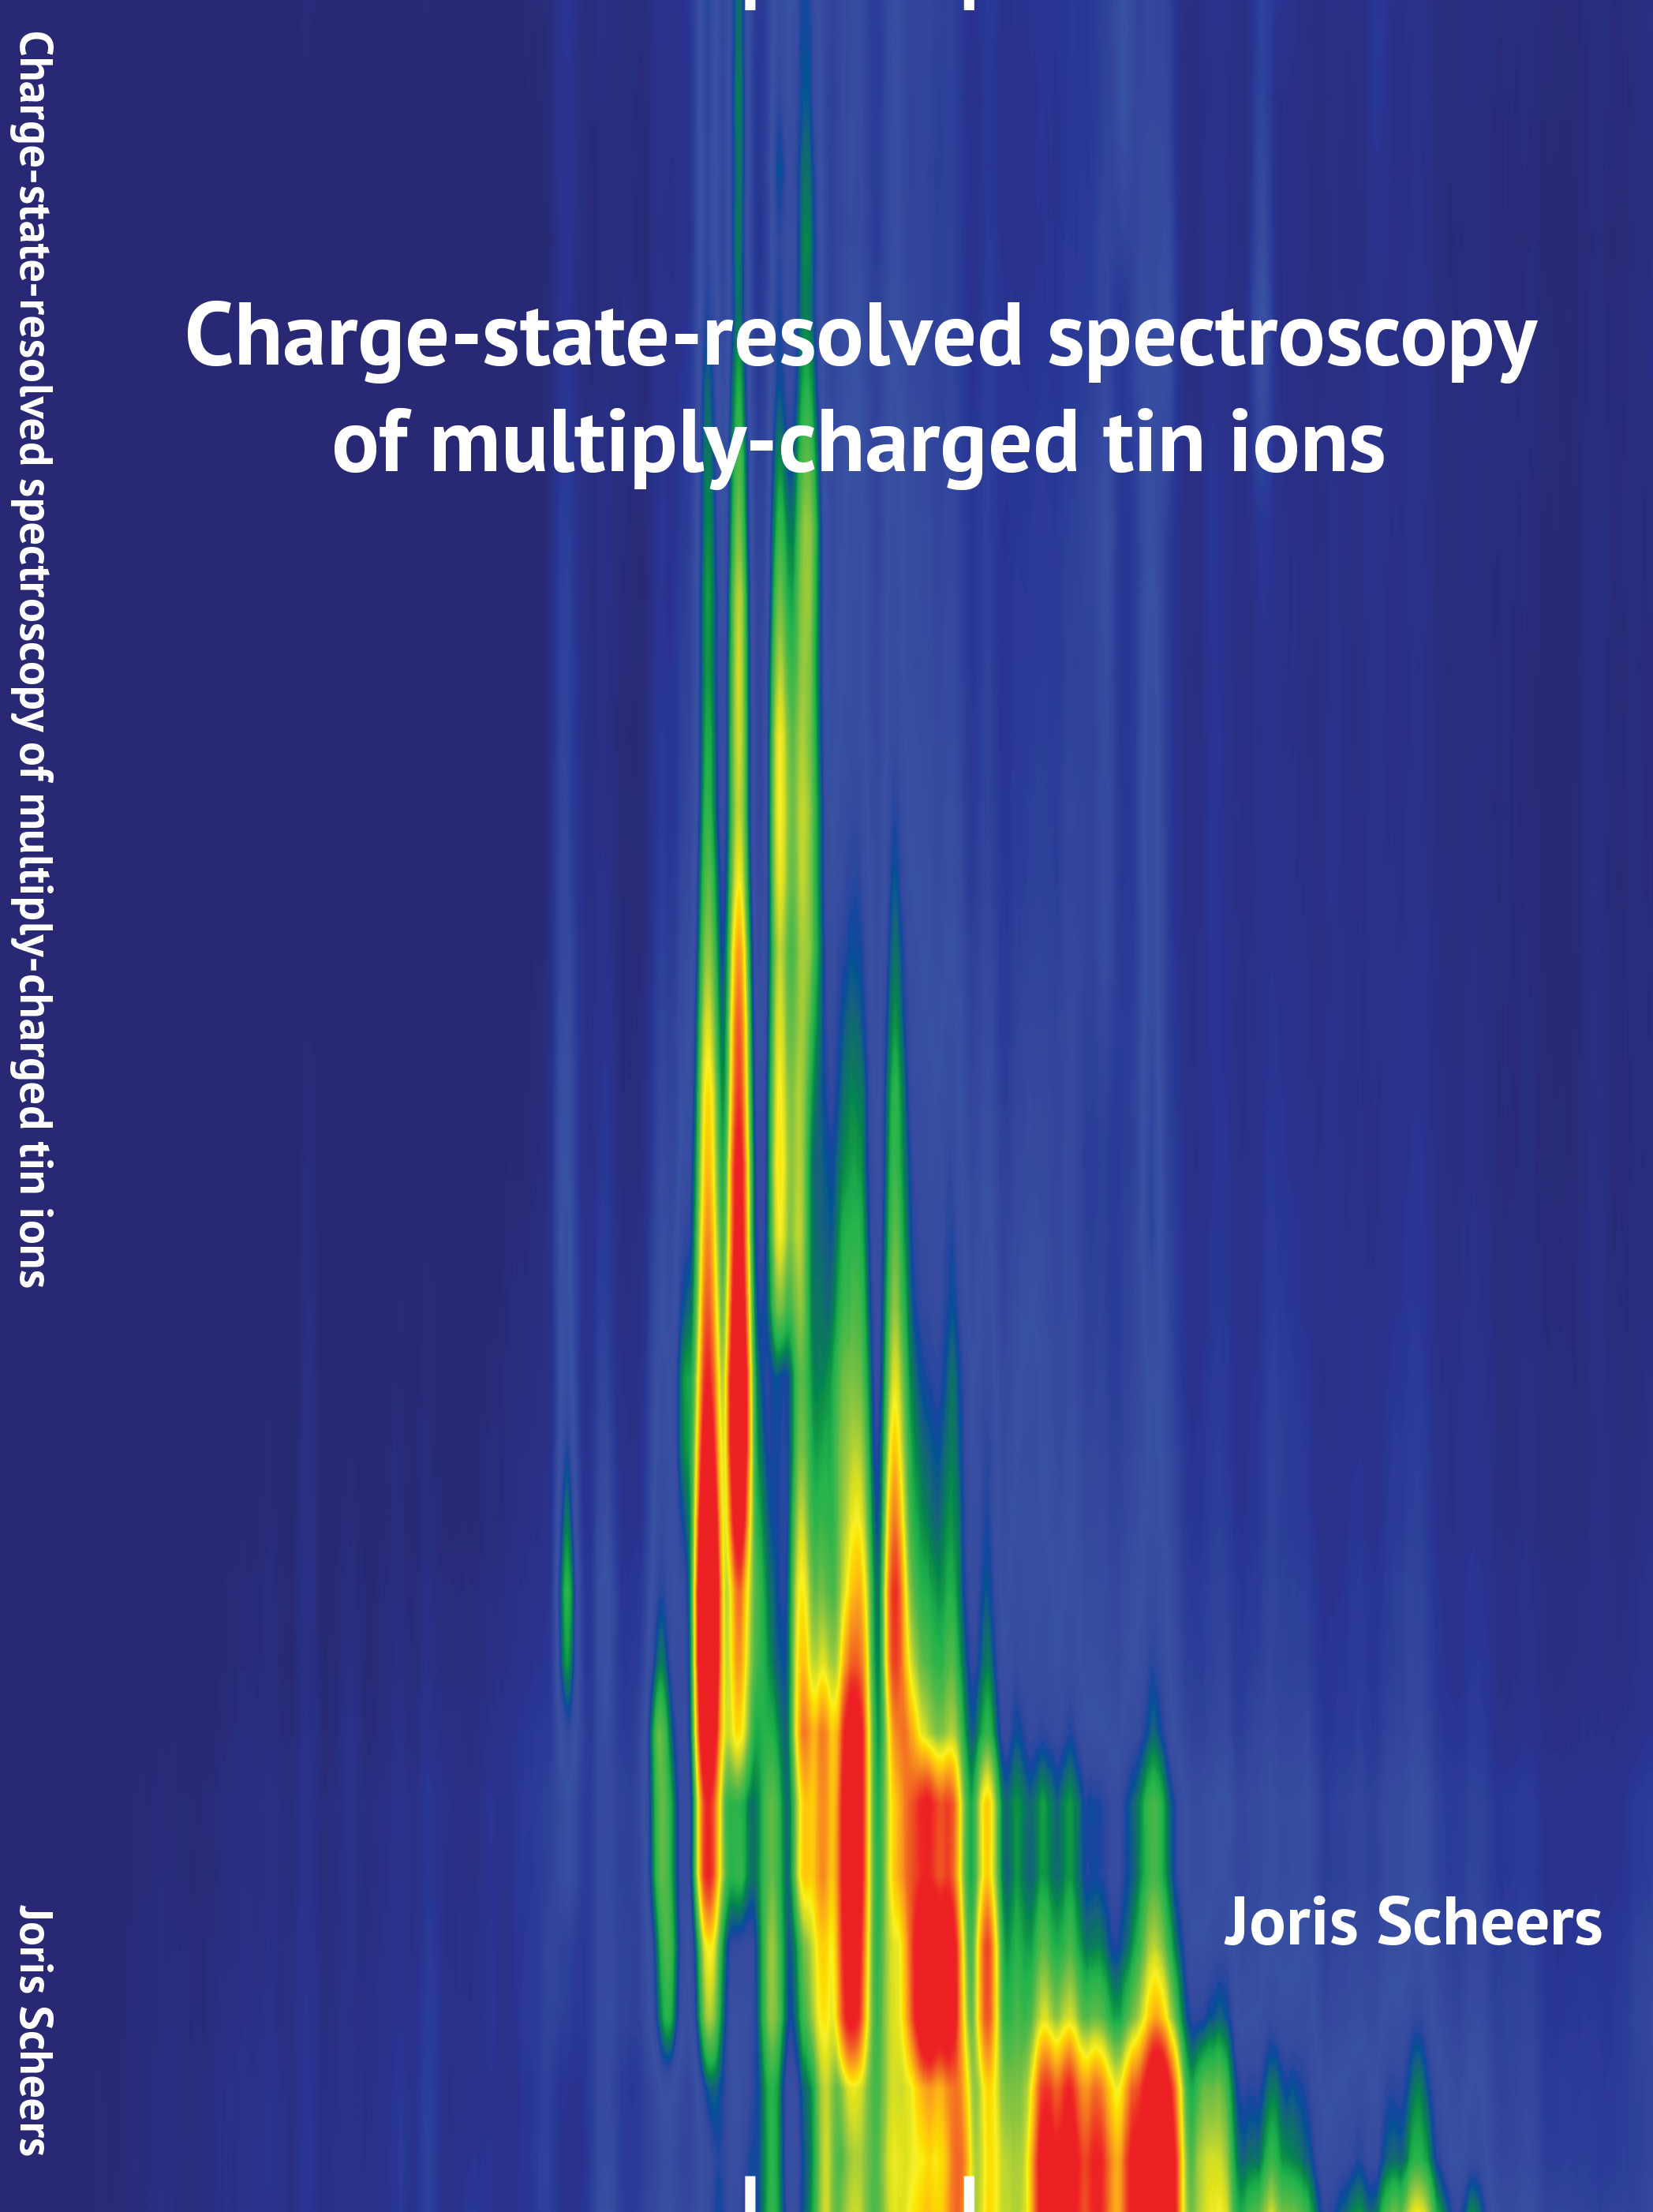 Cover of Charge-state-resolved spectroscopy of multiply-charged tin ions